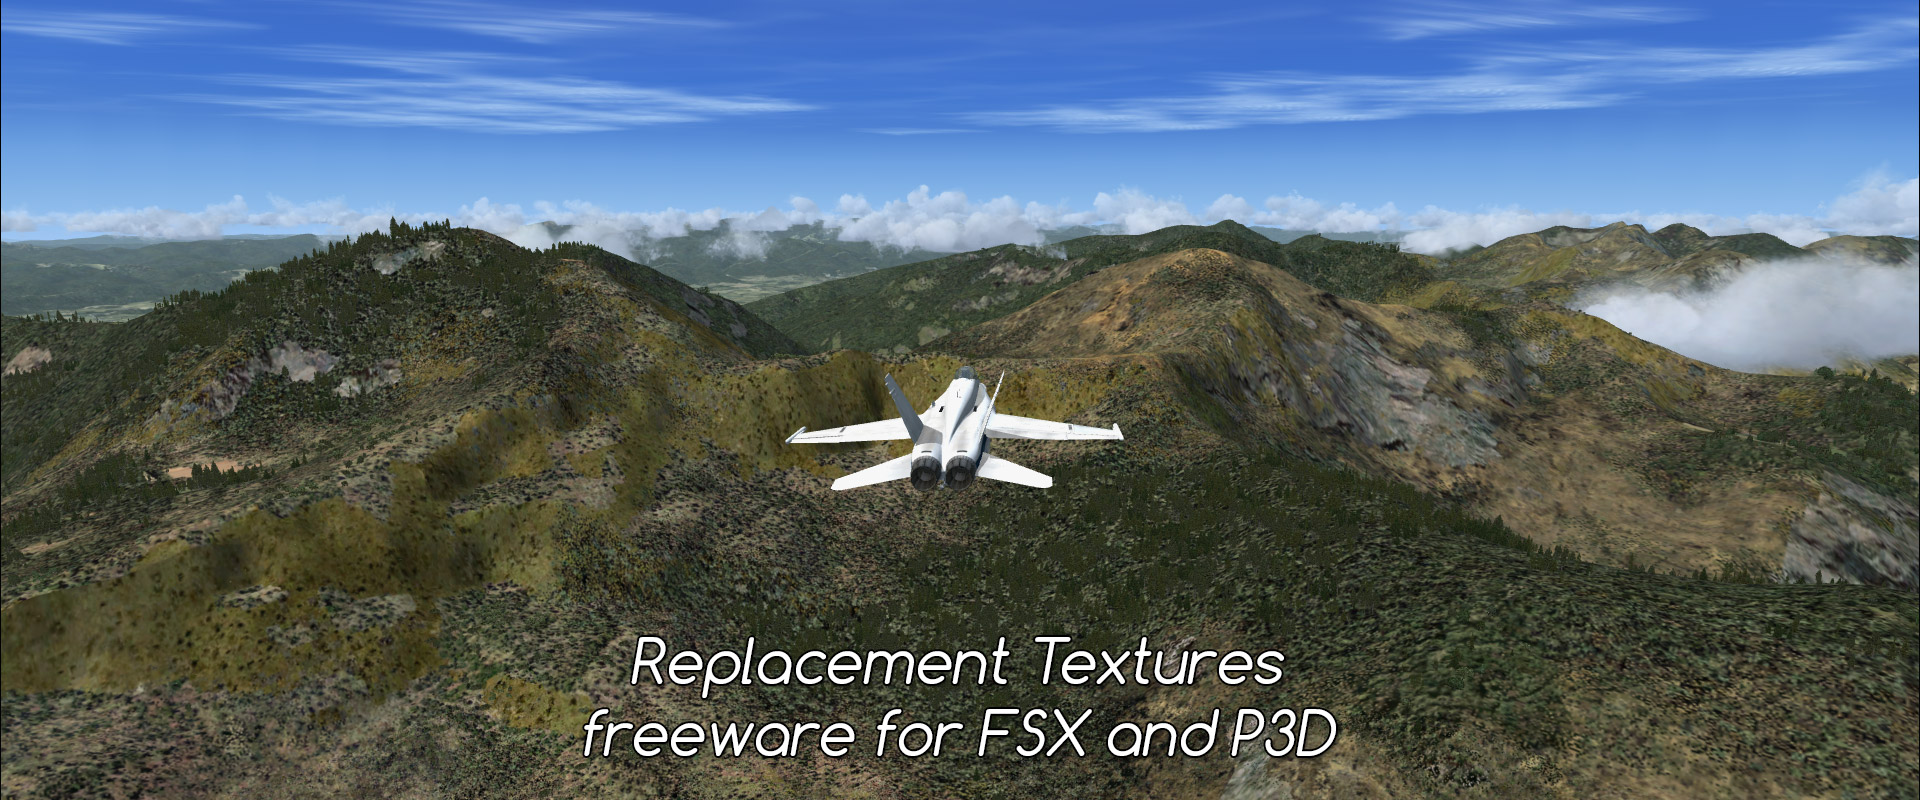 Better ground textures for FSX and P3D (freeware) • C-Aviation